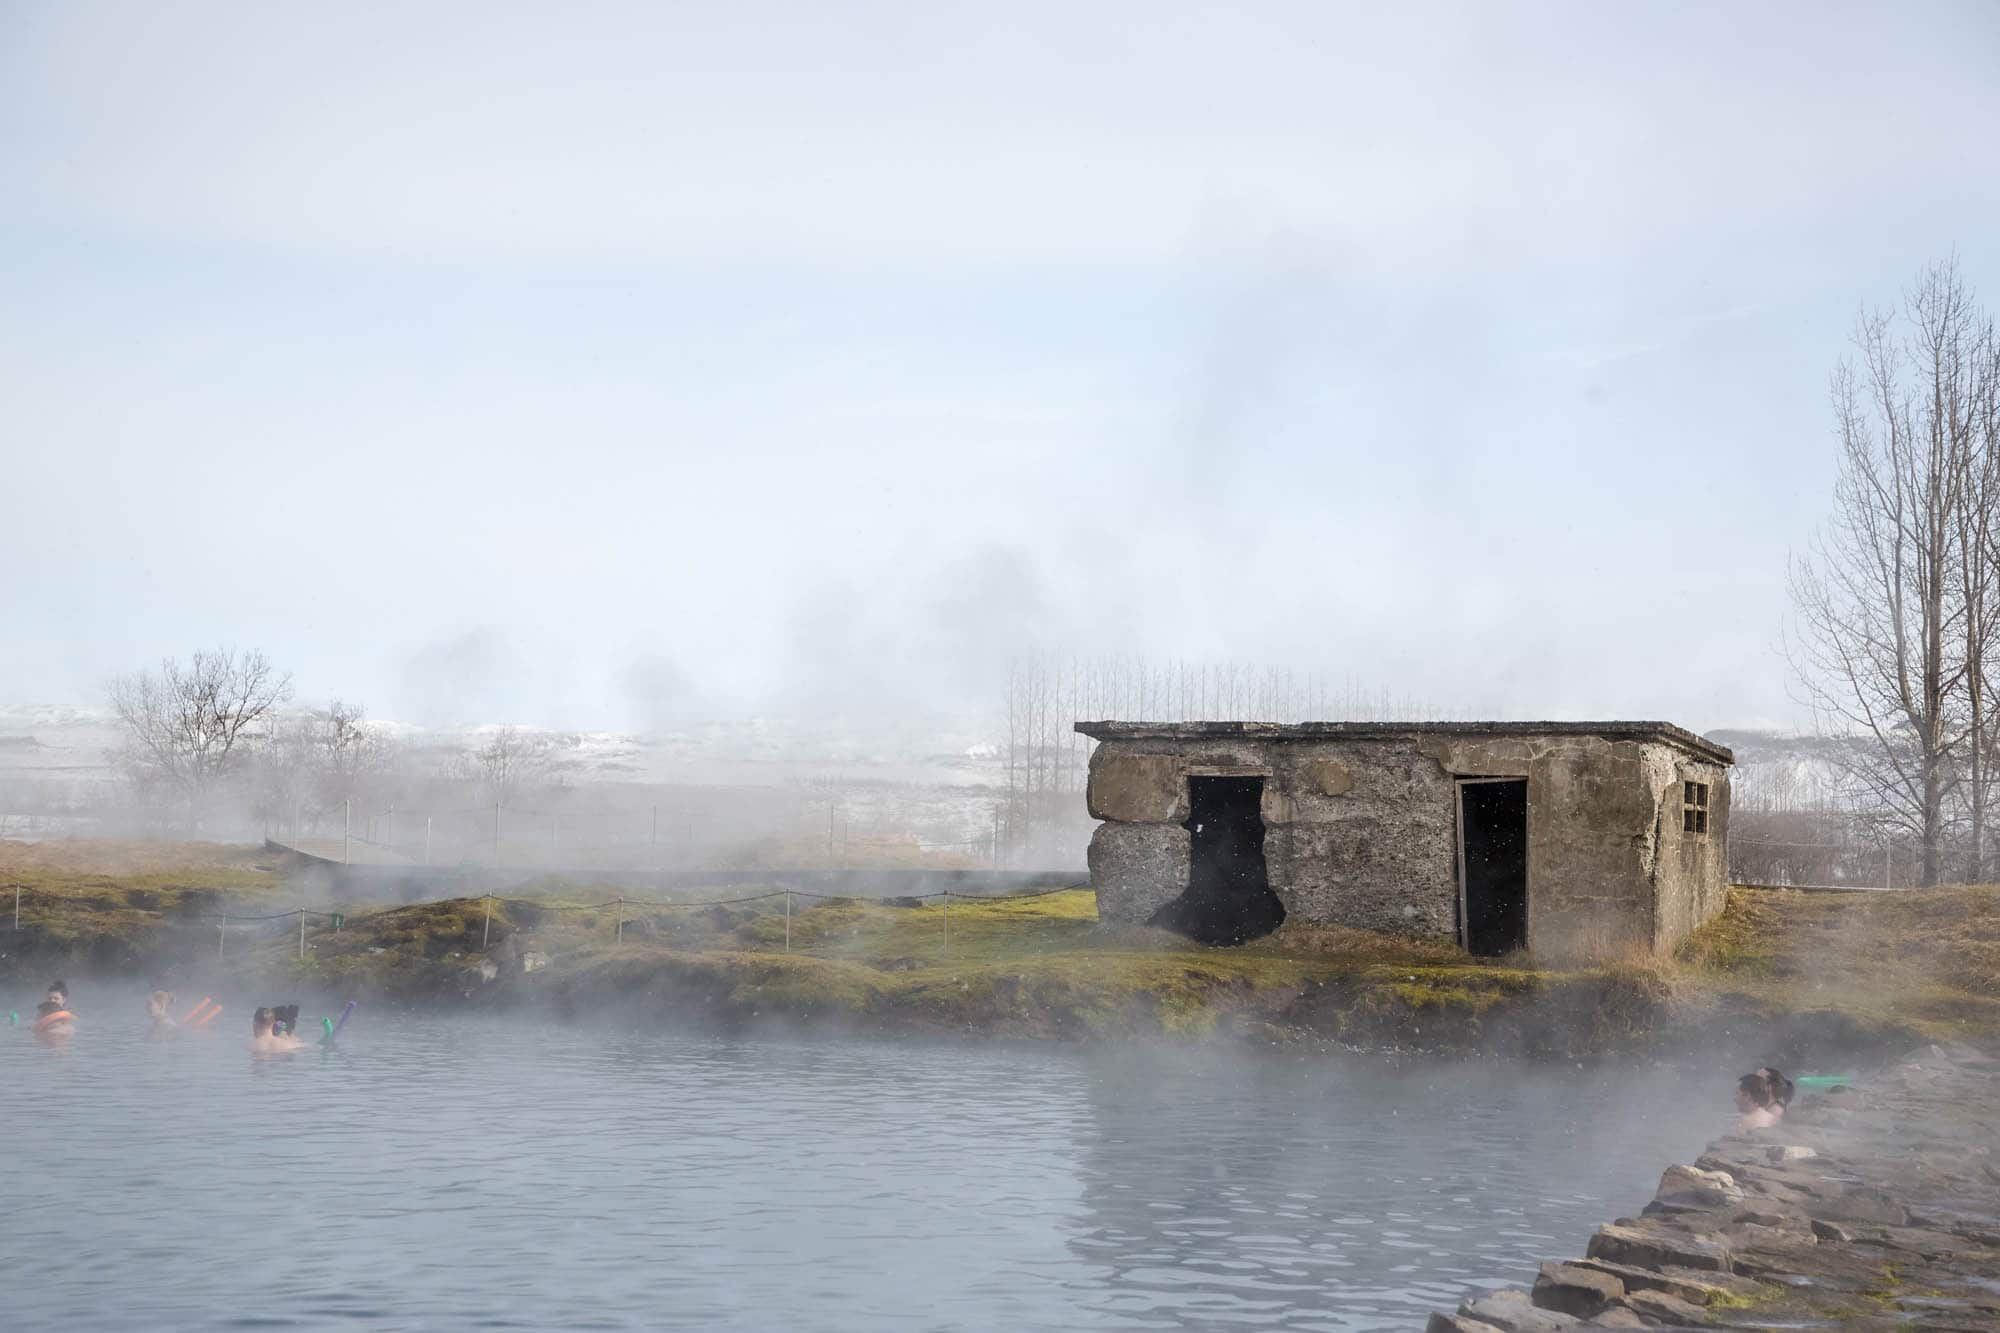 iceland golden circle tour with hot spring